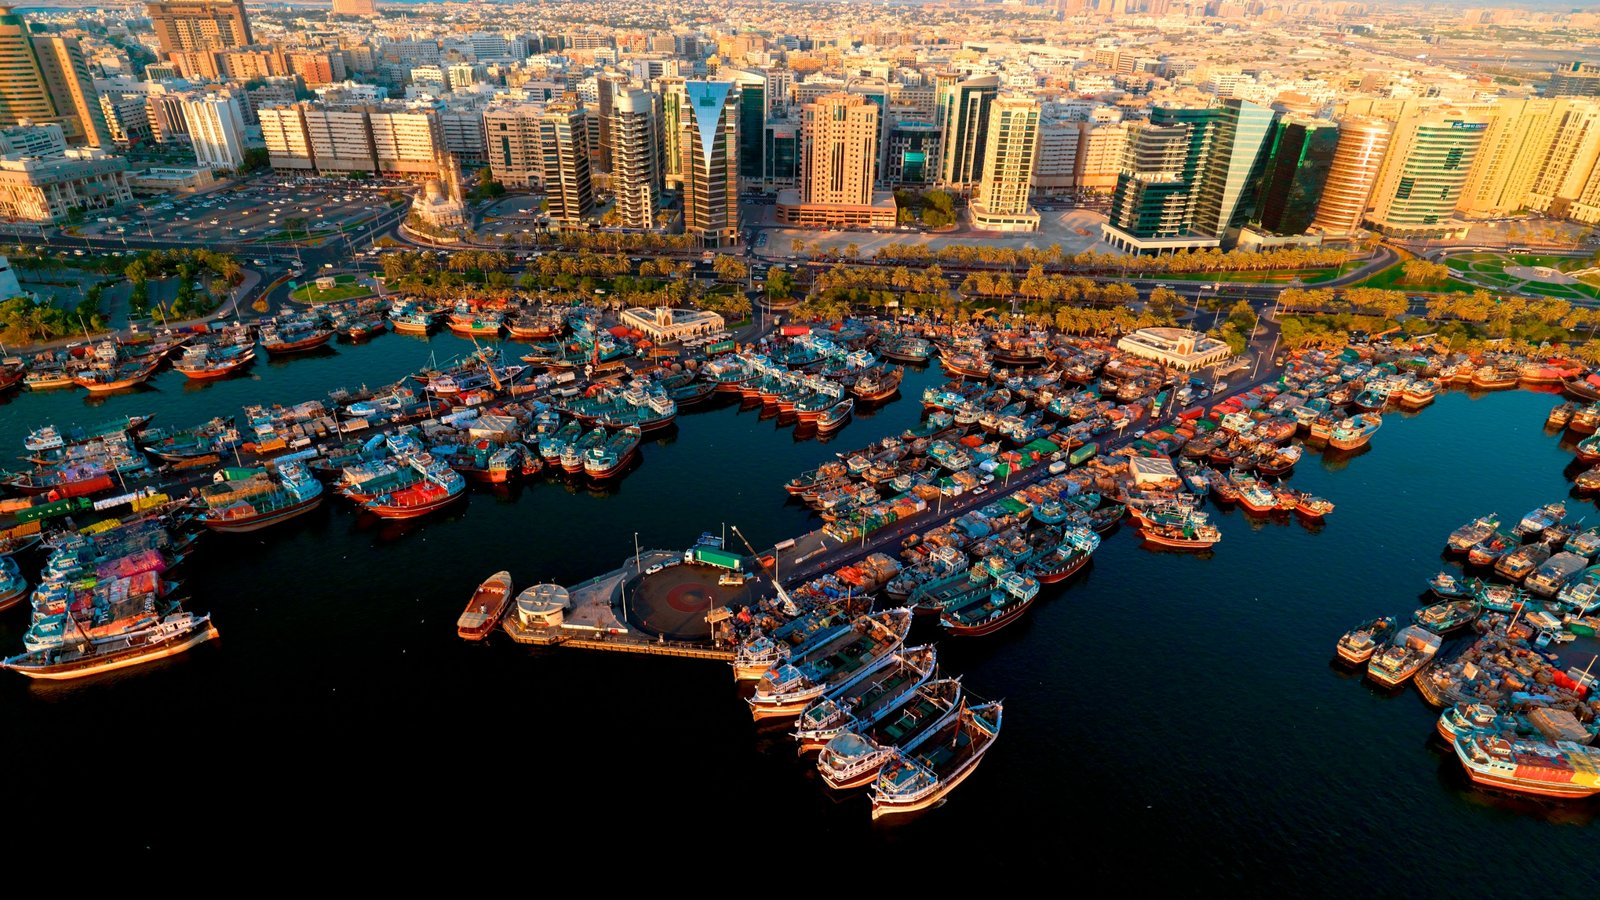 Dubai Creek which includes a city, boating and a marina